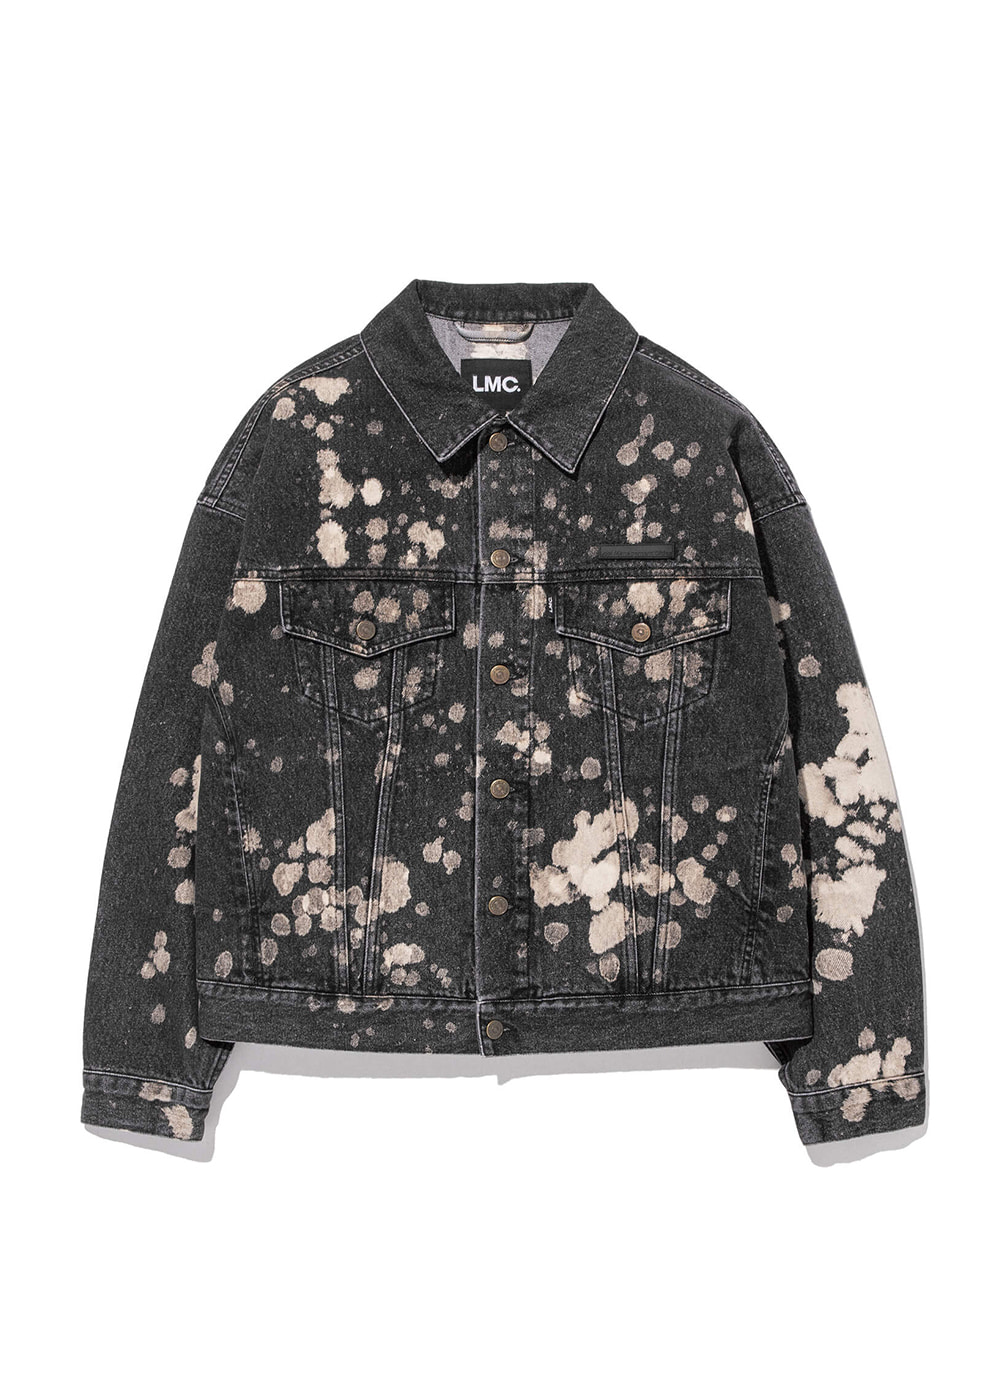 LMC RP DENIM BLEACHED TRUCKER JACKET black